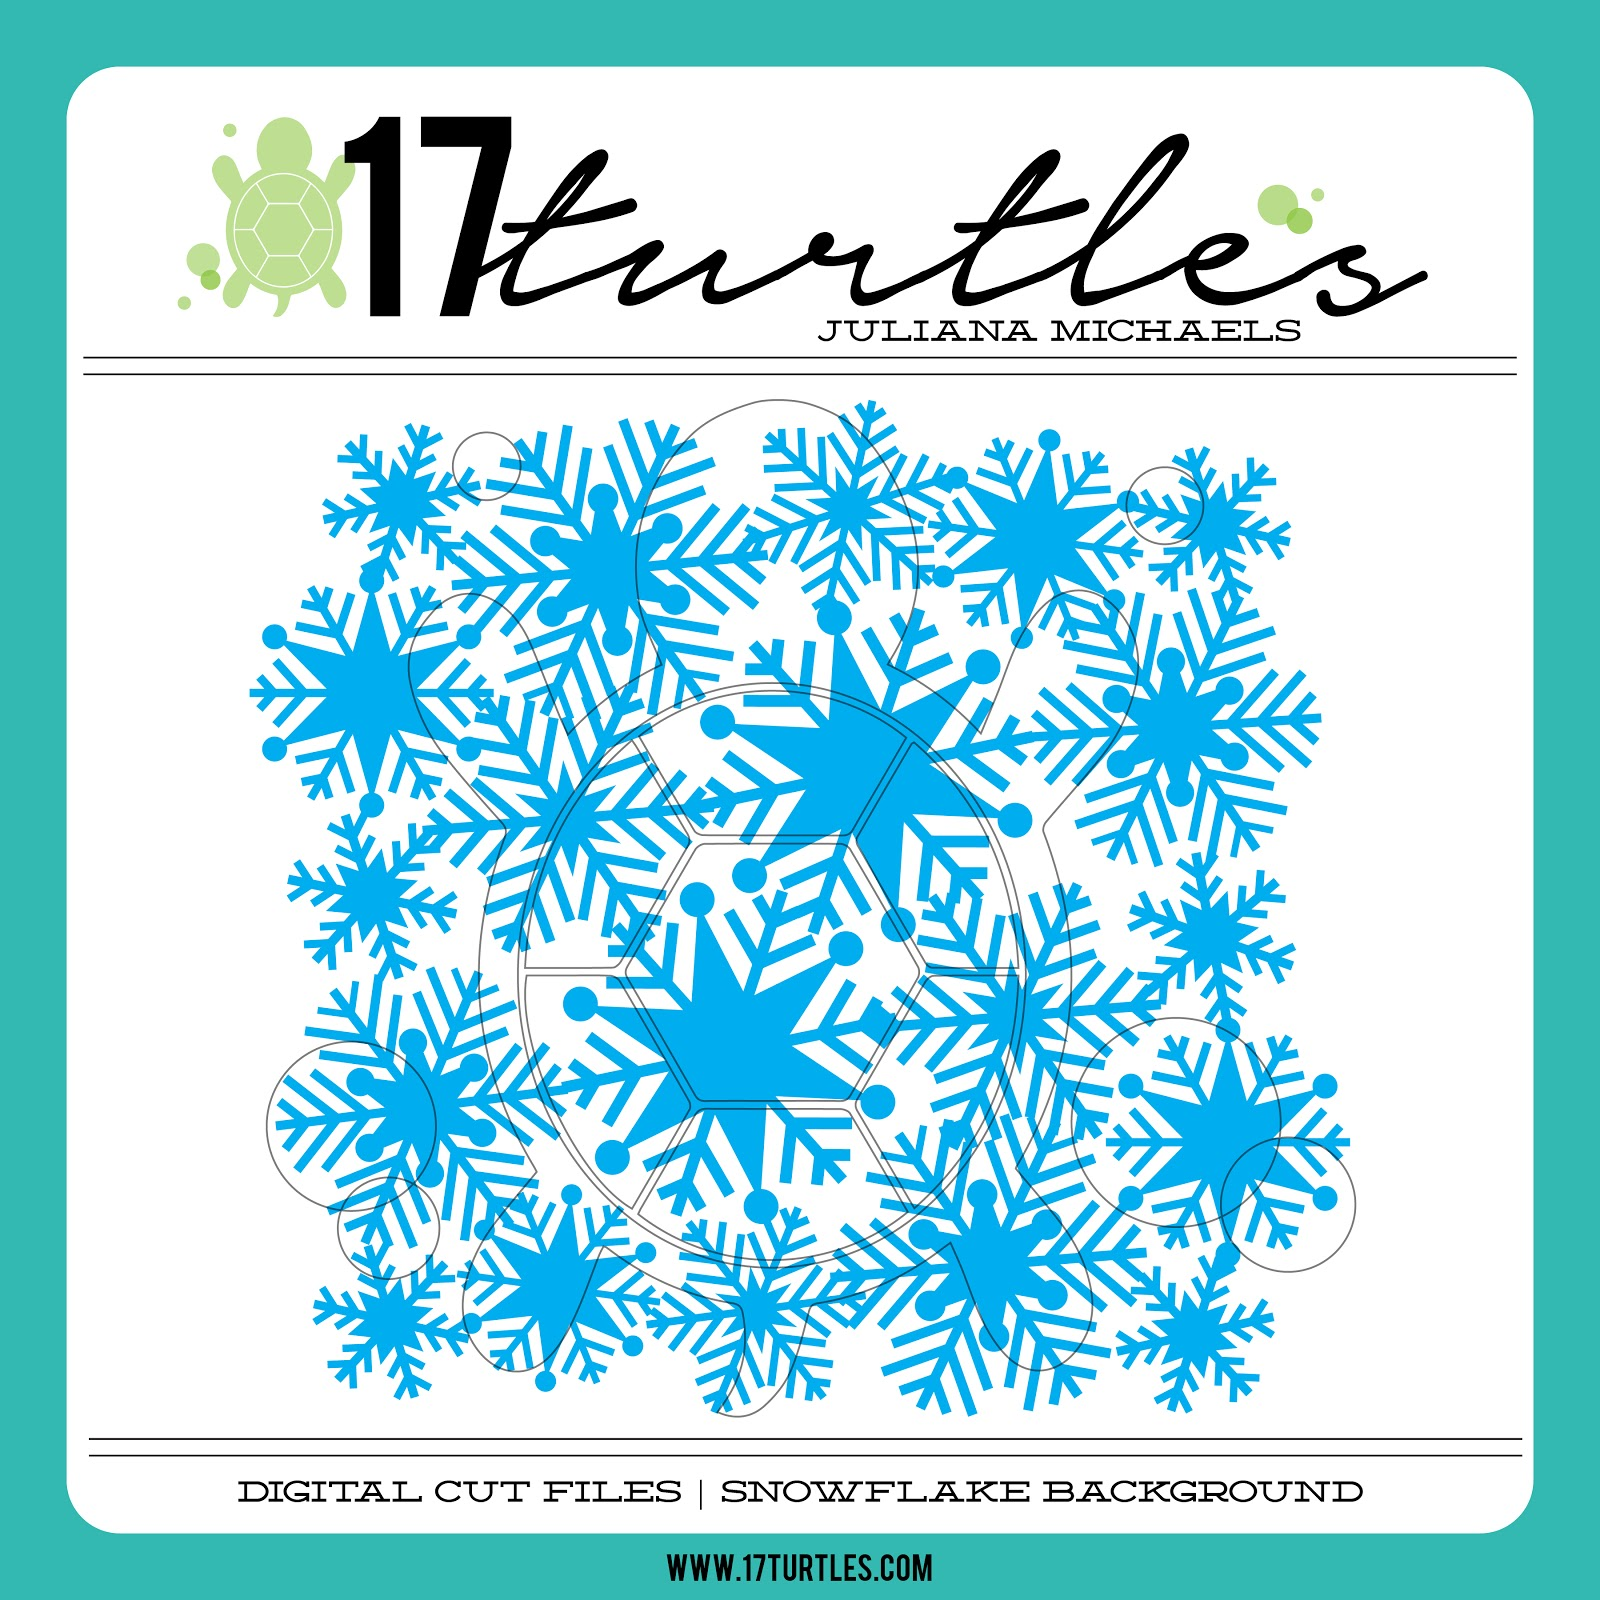 17turtles Digital Cut File Snowflake Background